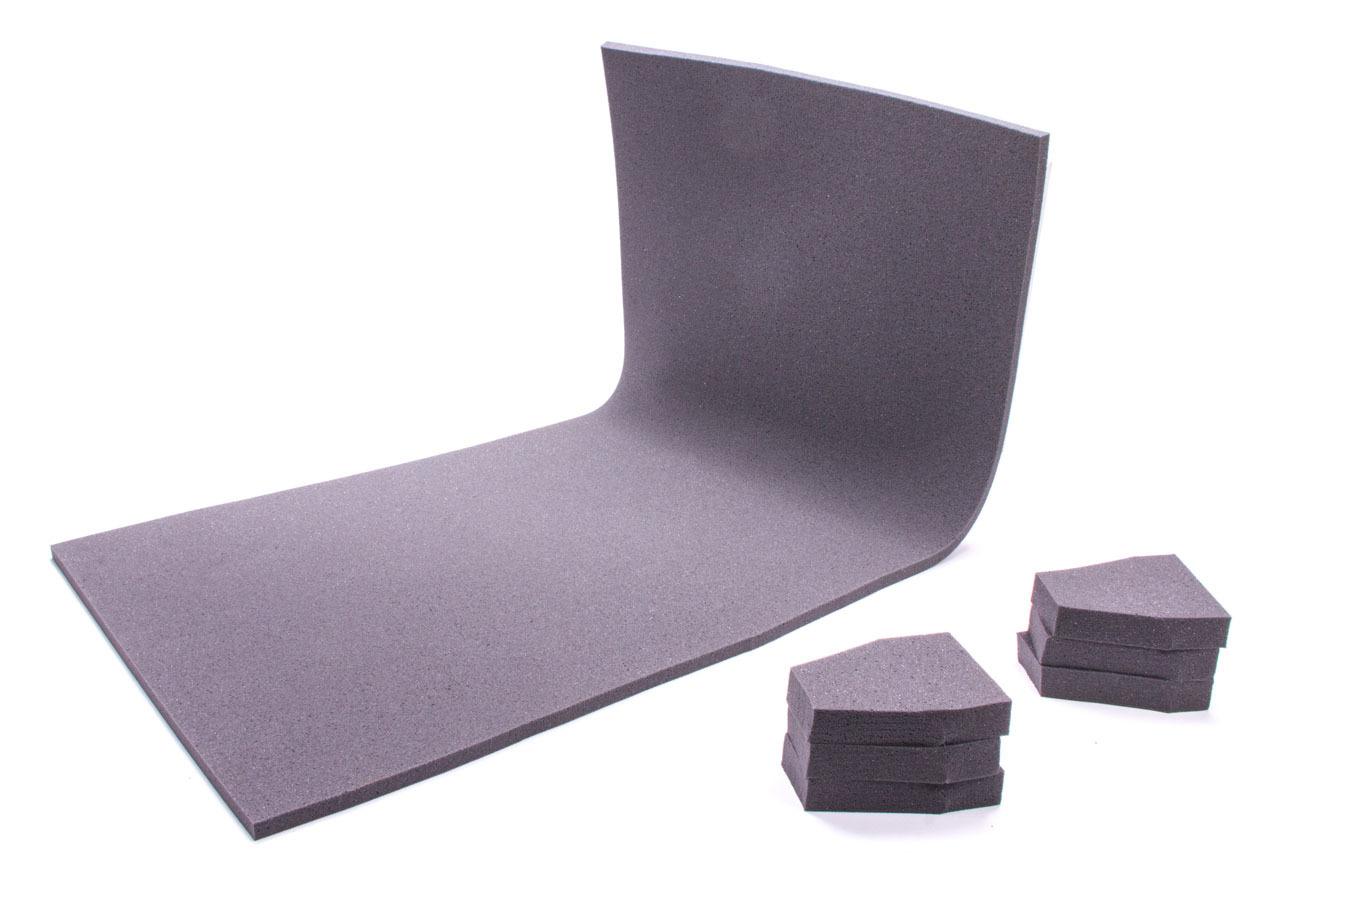 The Crash Pad 401805-812SAM Sheet Padding, 812 SAM, 40 x 18 x 1/2 in Thick, Gray, Each